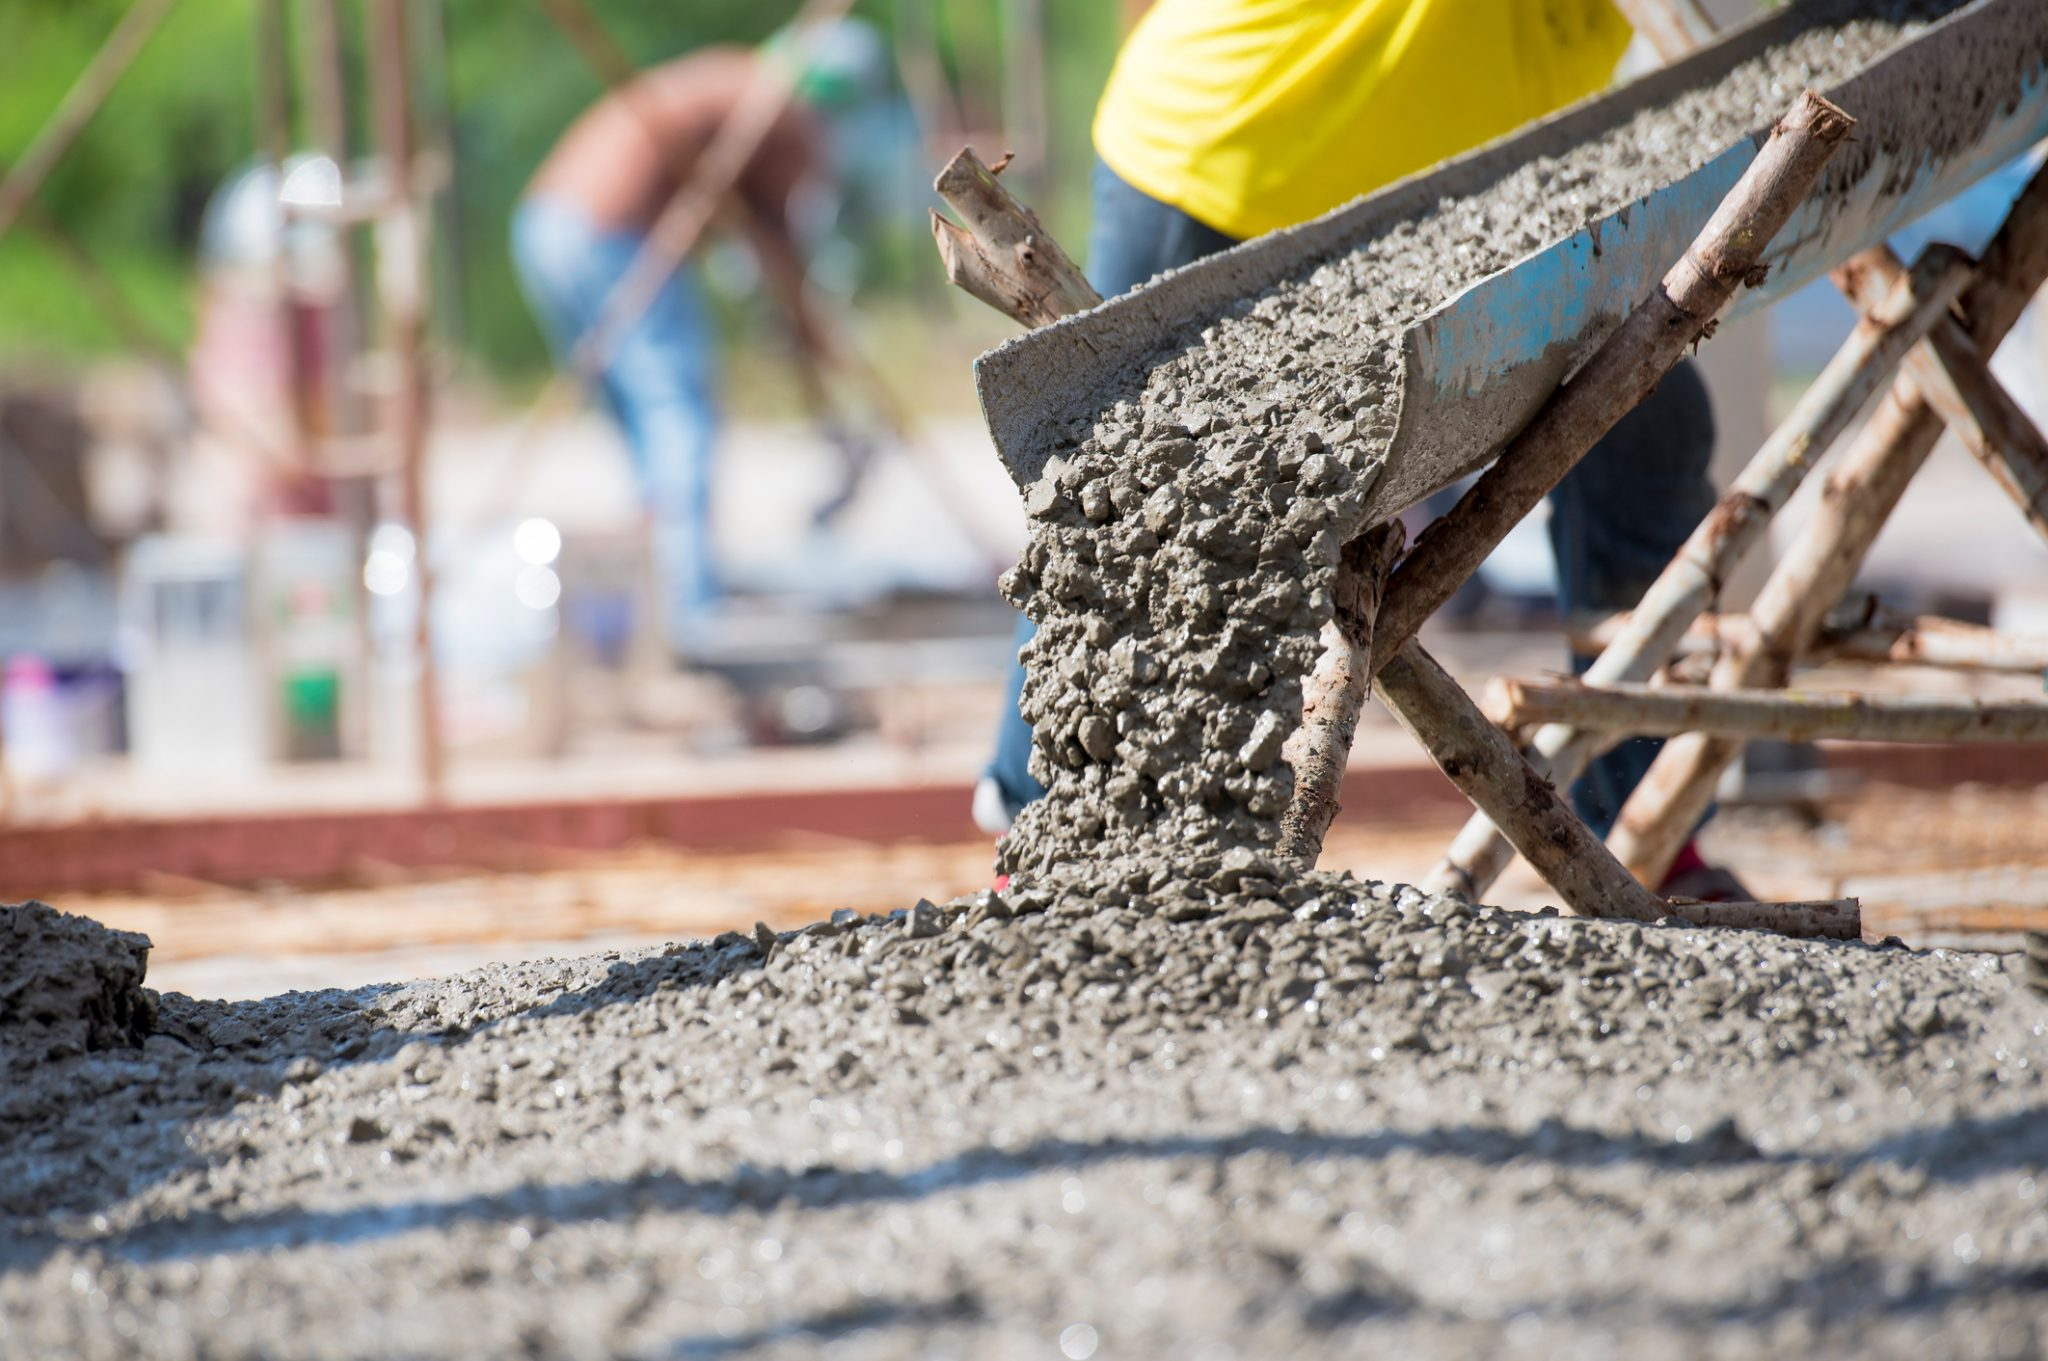 Public liability insurance for concreters